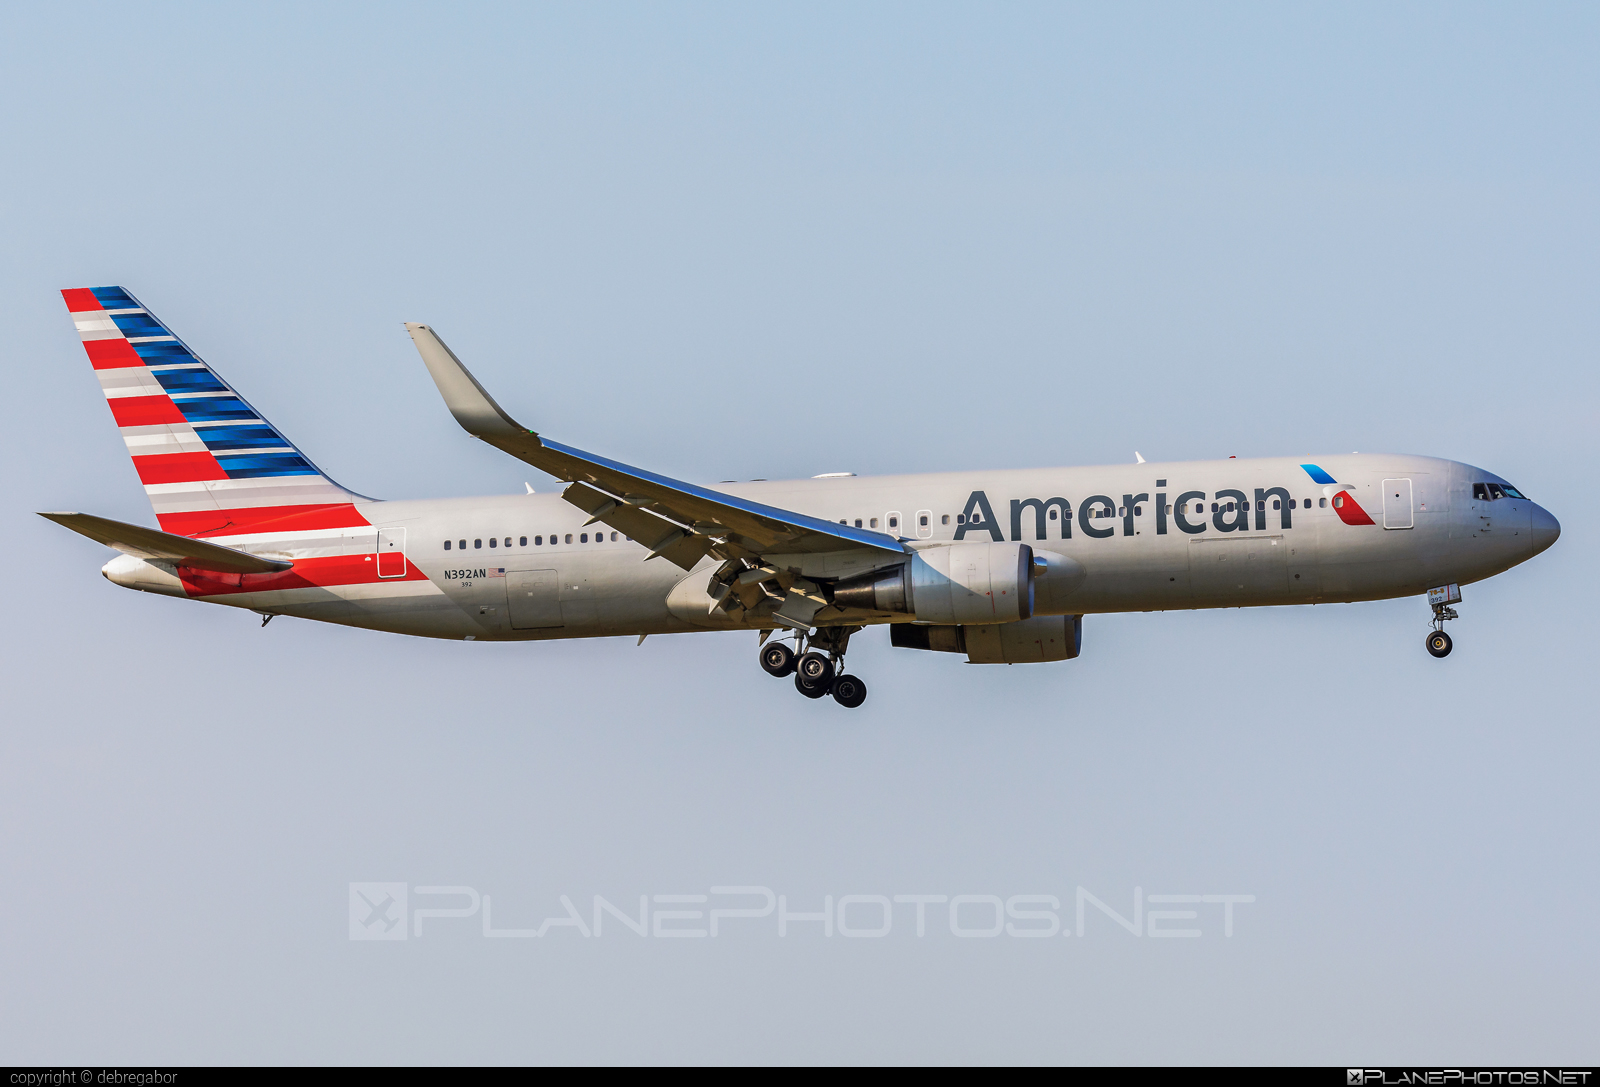 Boeing 767-300ER - N392AN operated by American Airlines #americanairlines #b767 #b767er #boeing #boeing767